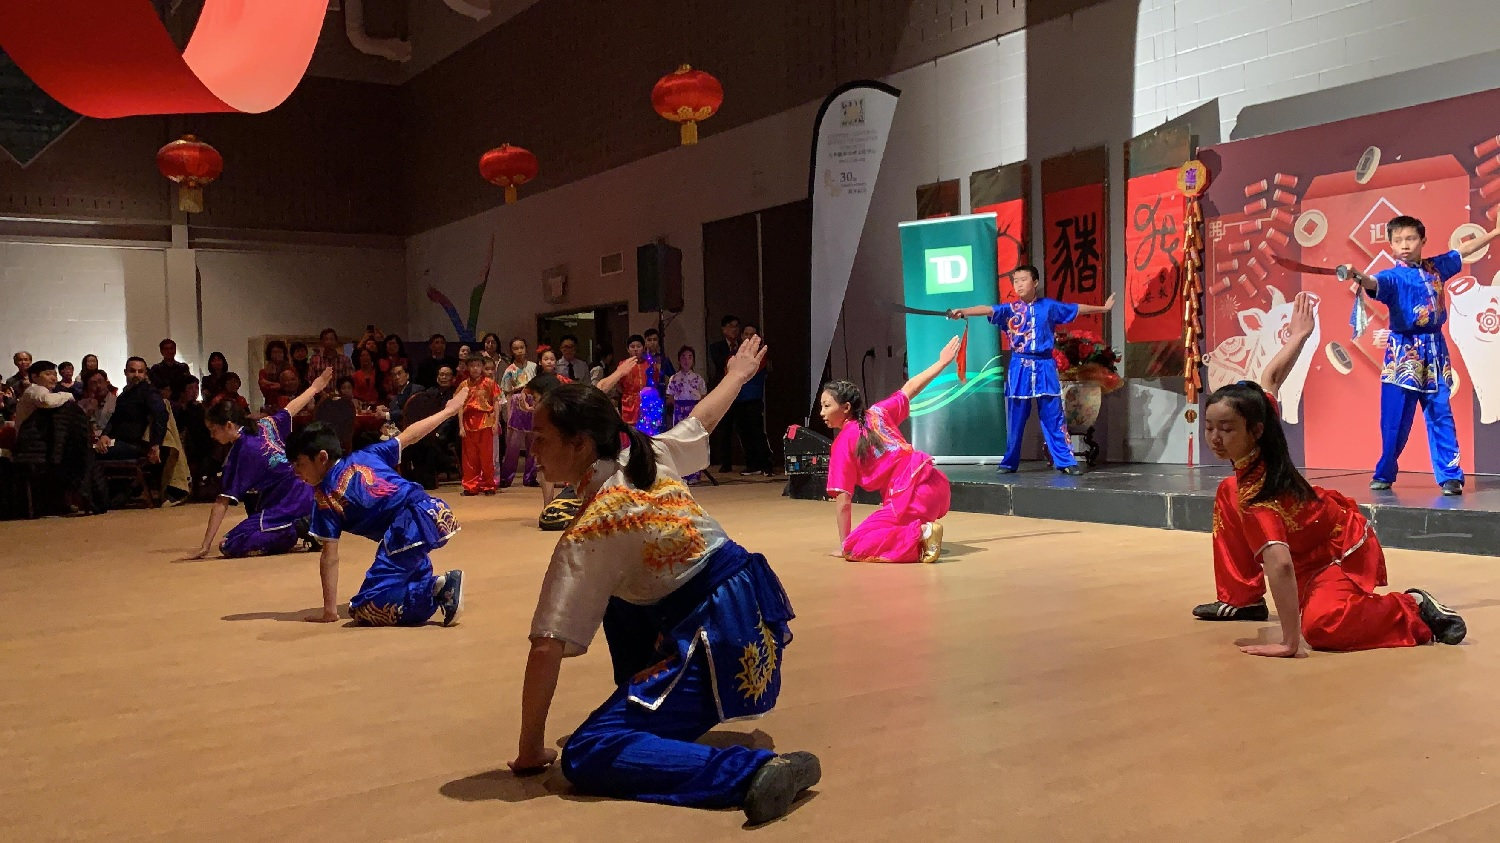 wayland-li-wushu-year-of-the-pig-dinner-chinese-cultural-centre-2019-10.jpg